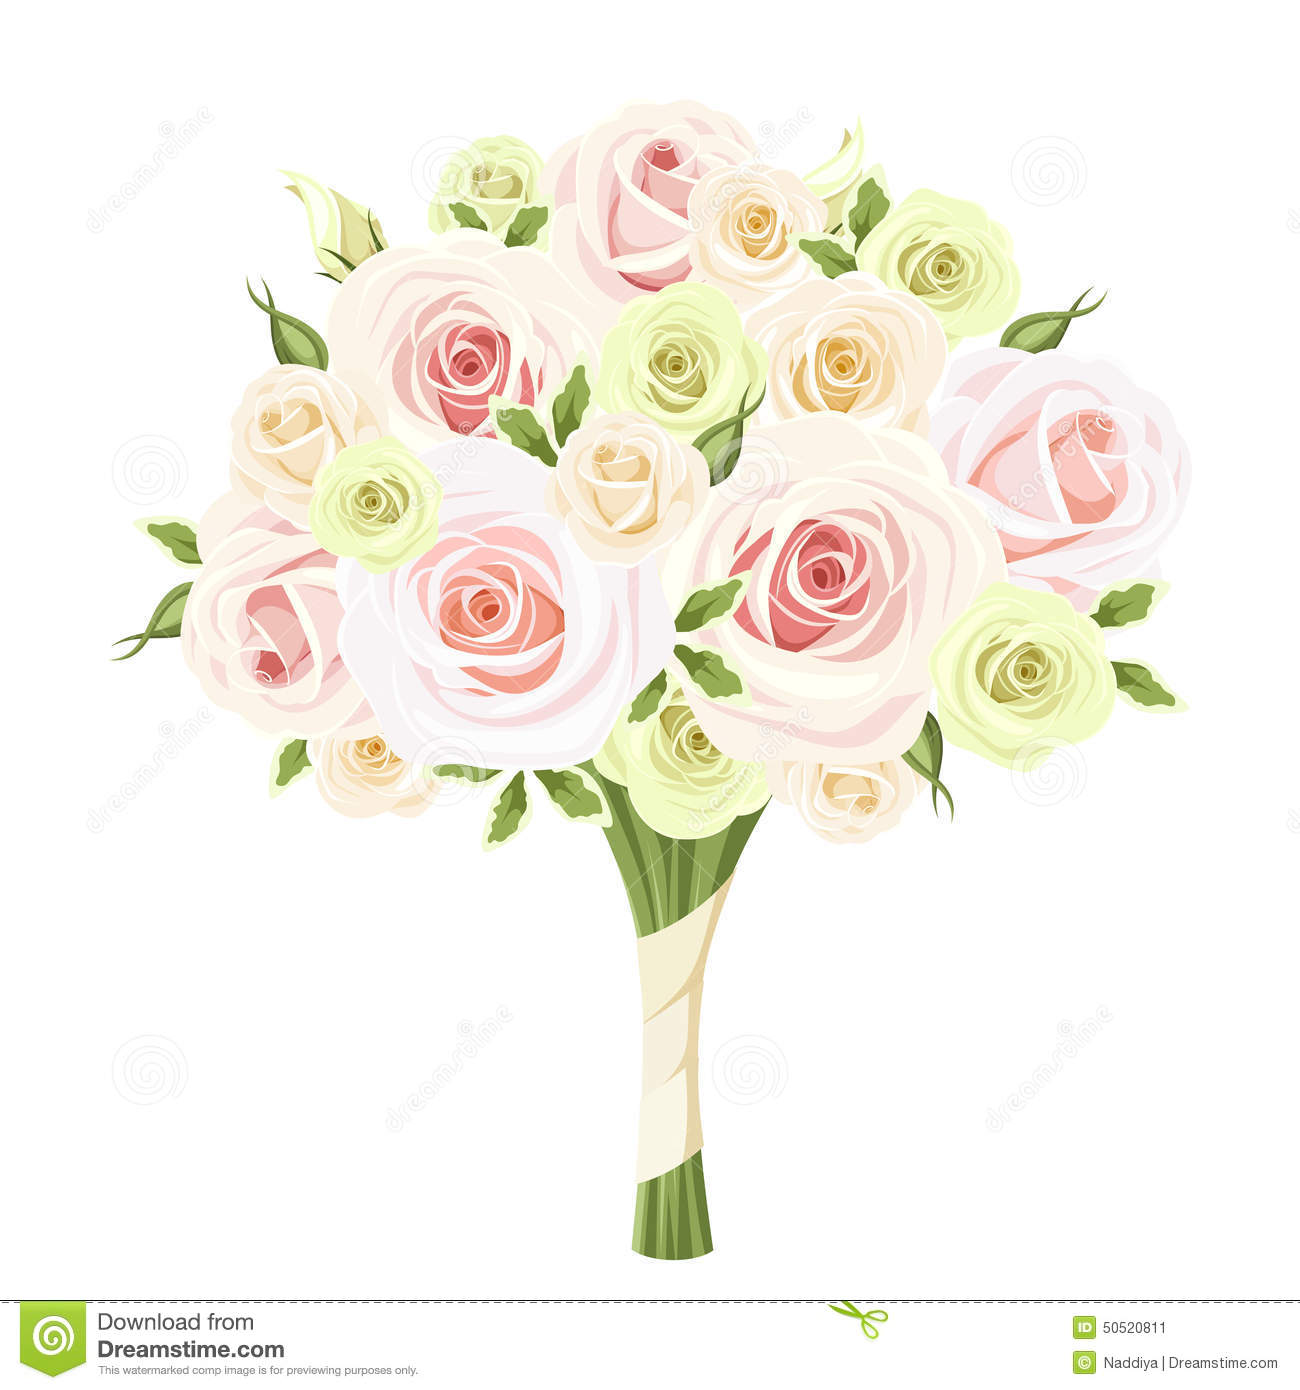 Wedding bouquet clipart 5 » Clipart Station.